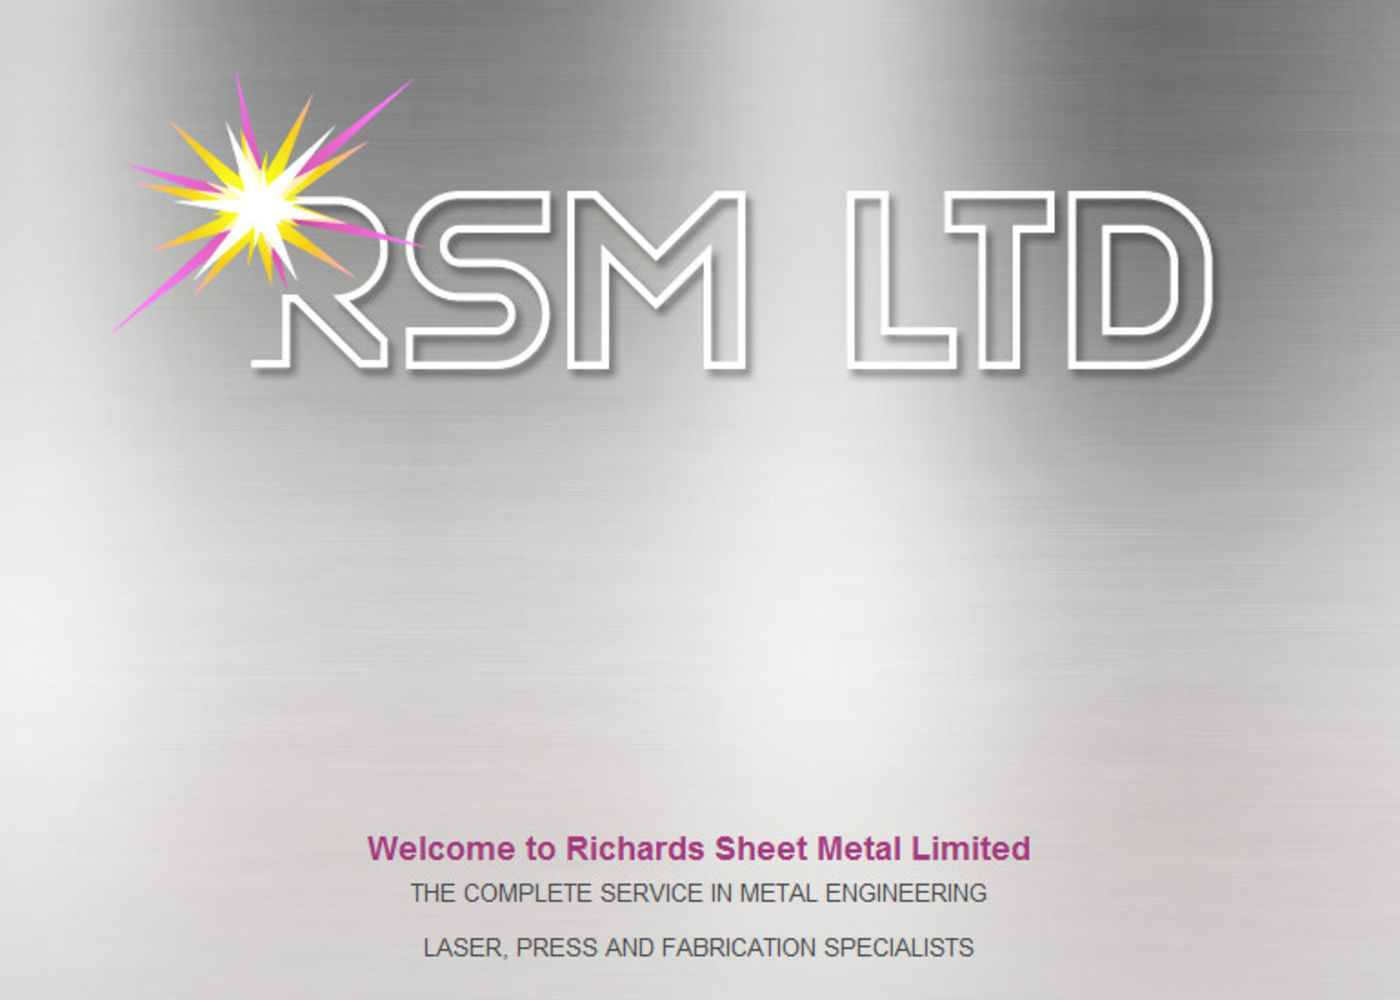 Richards Sheet Metal Limited Welcome